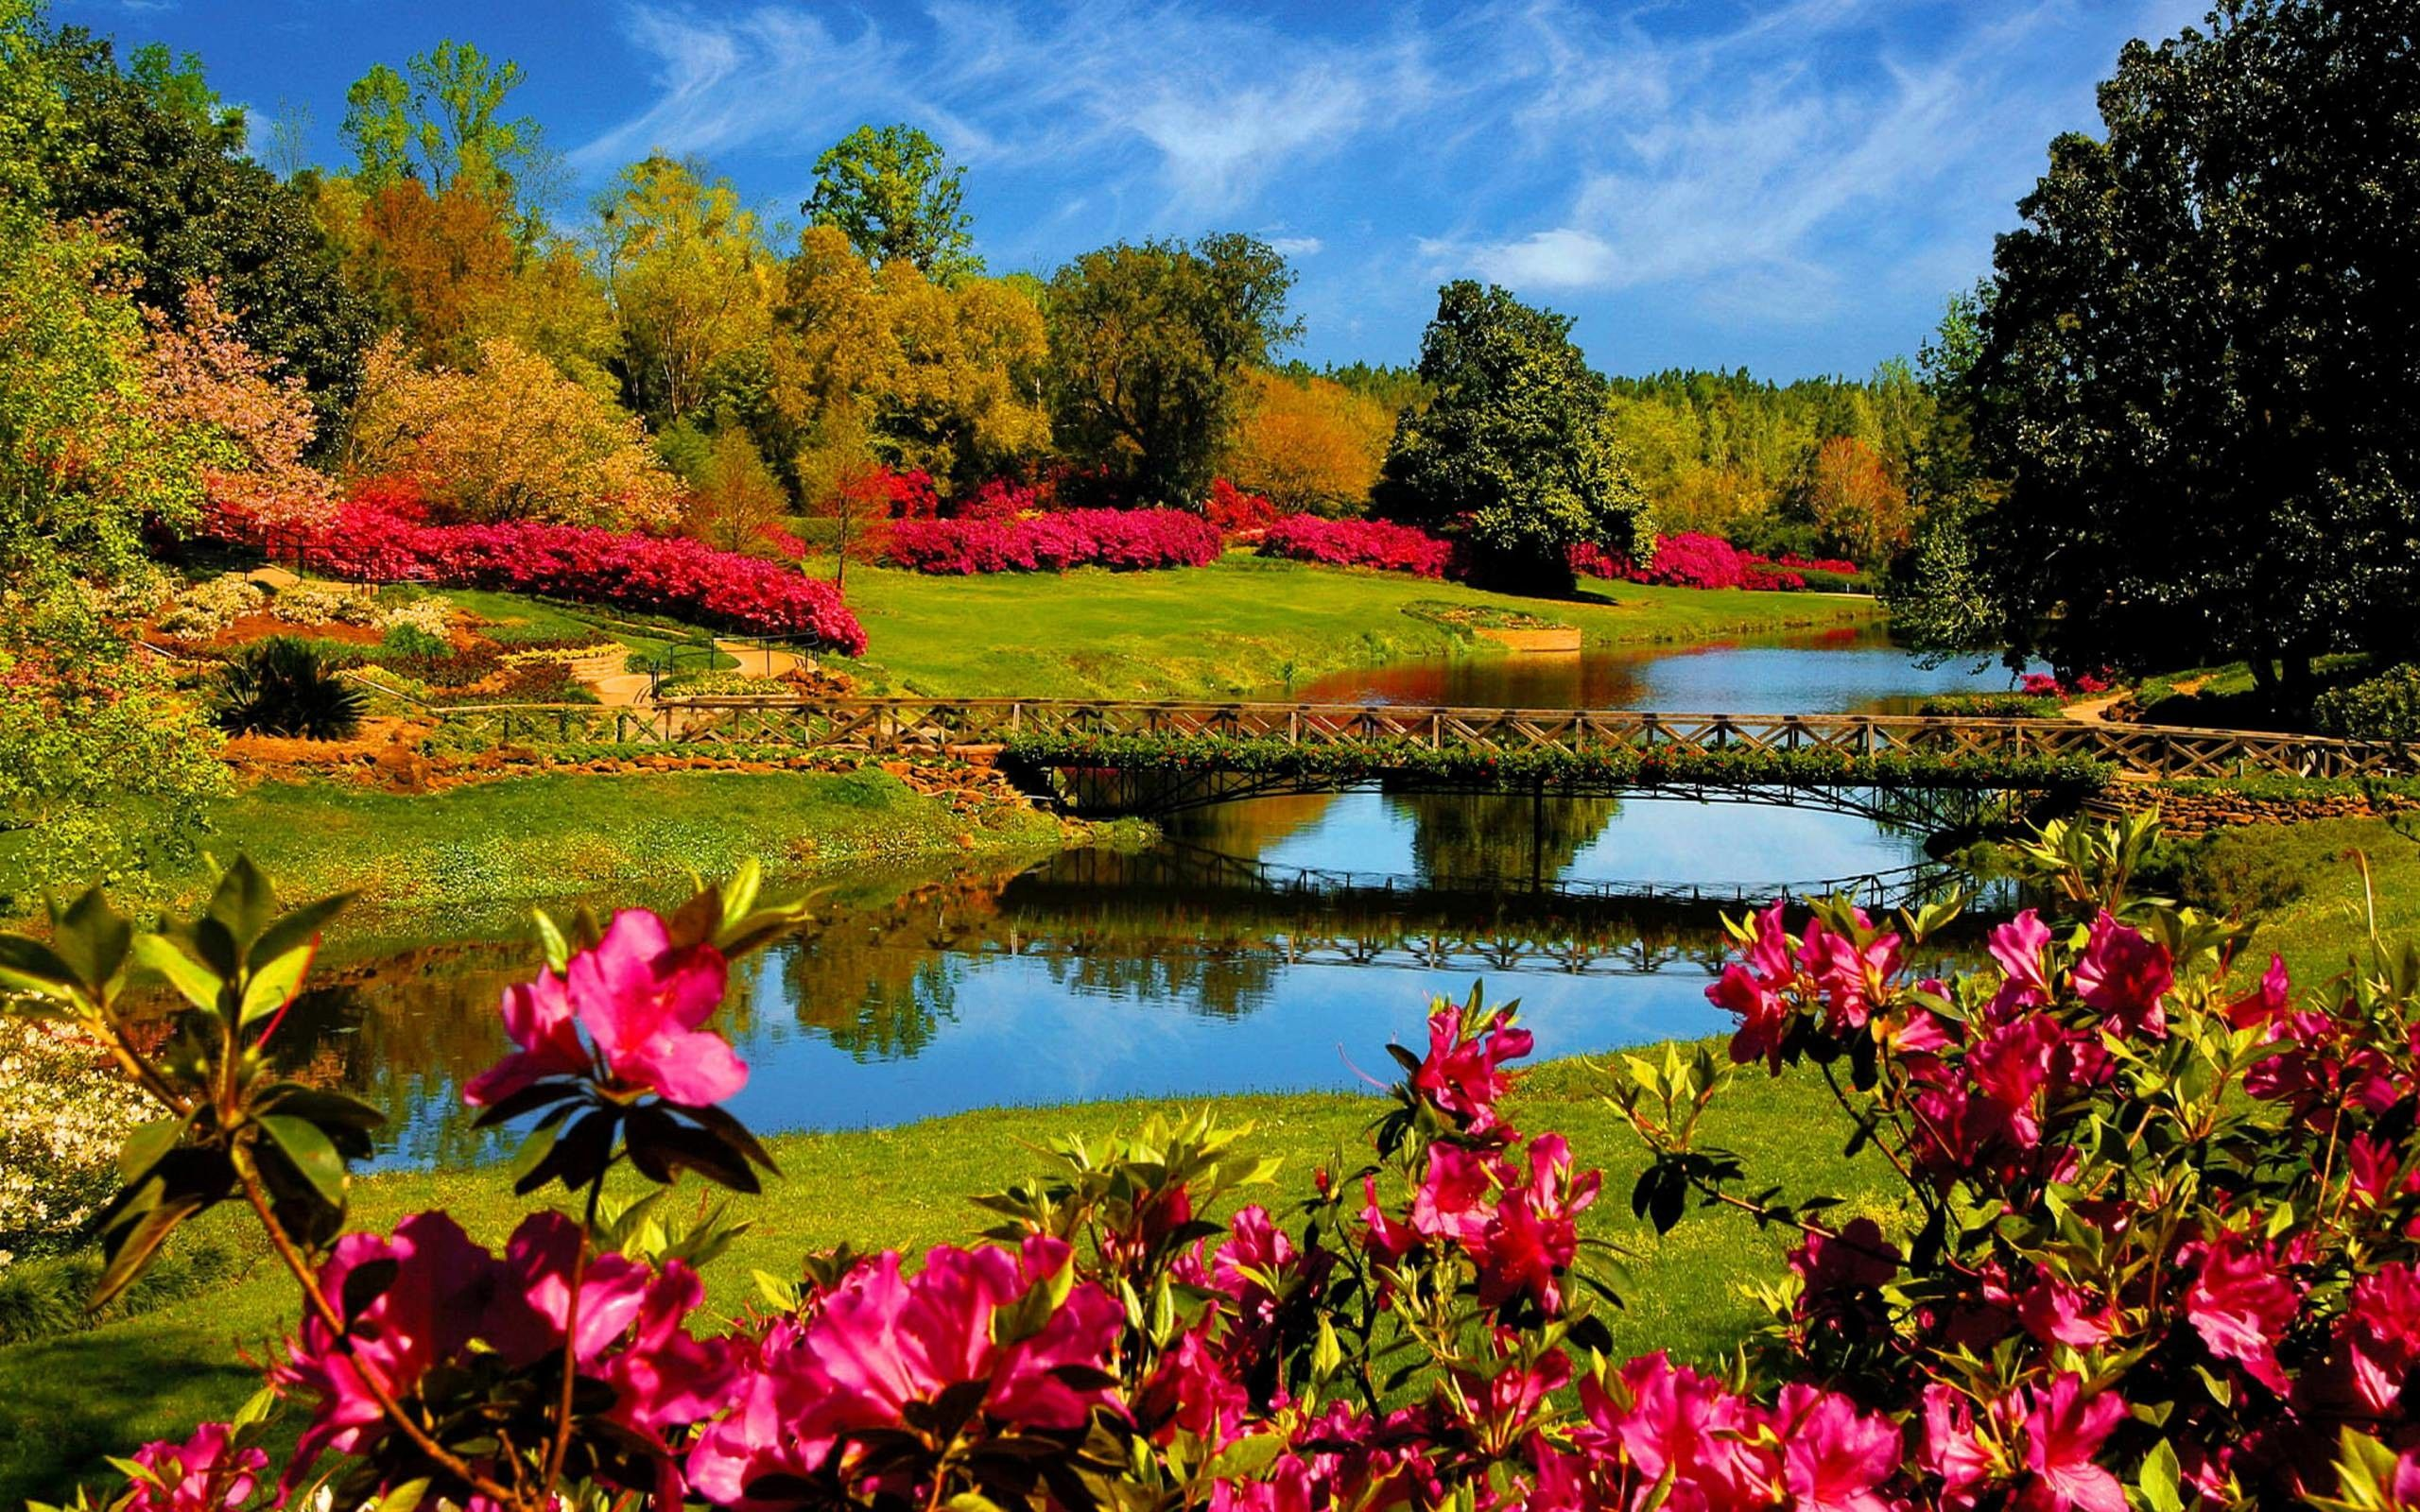 Spring Nature Wallpapers Picture Beautiful Nature Wallpaper Spring Wallpaper Spring Desktop Wallpaper